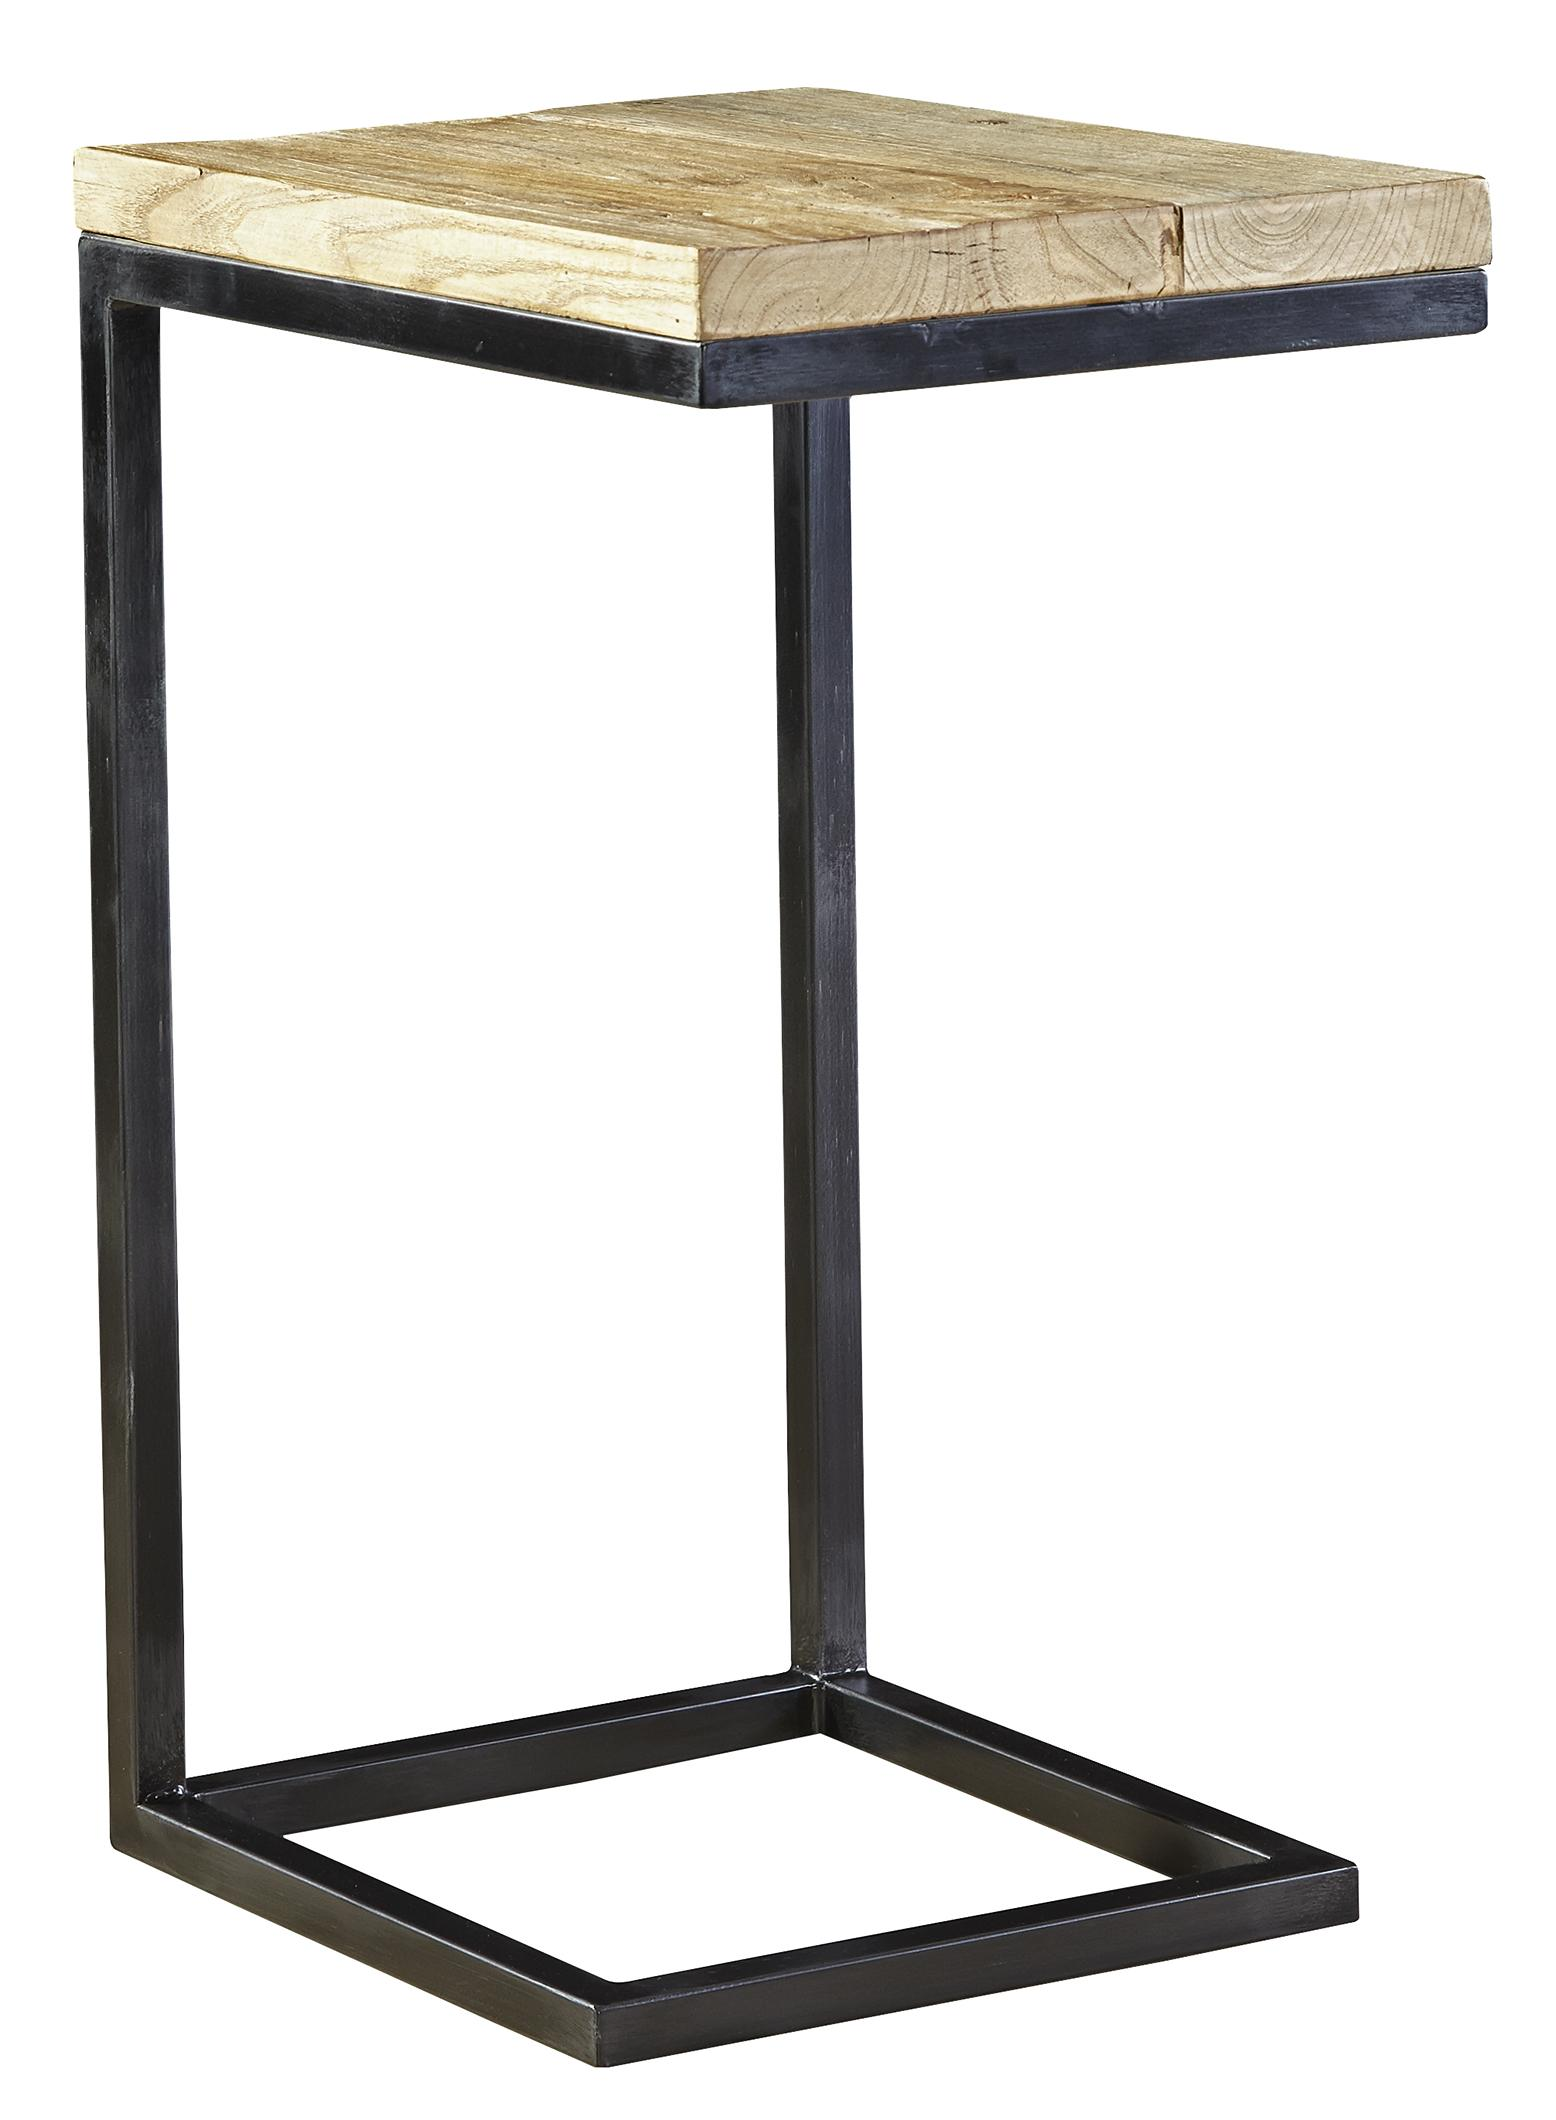 Accents Martini Table by Furniture Classics at Alison Craig Home Furnishings